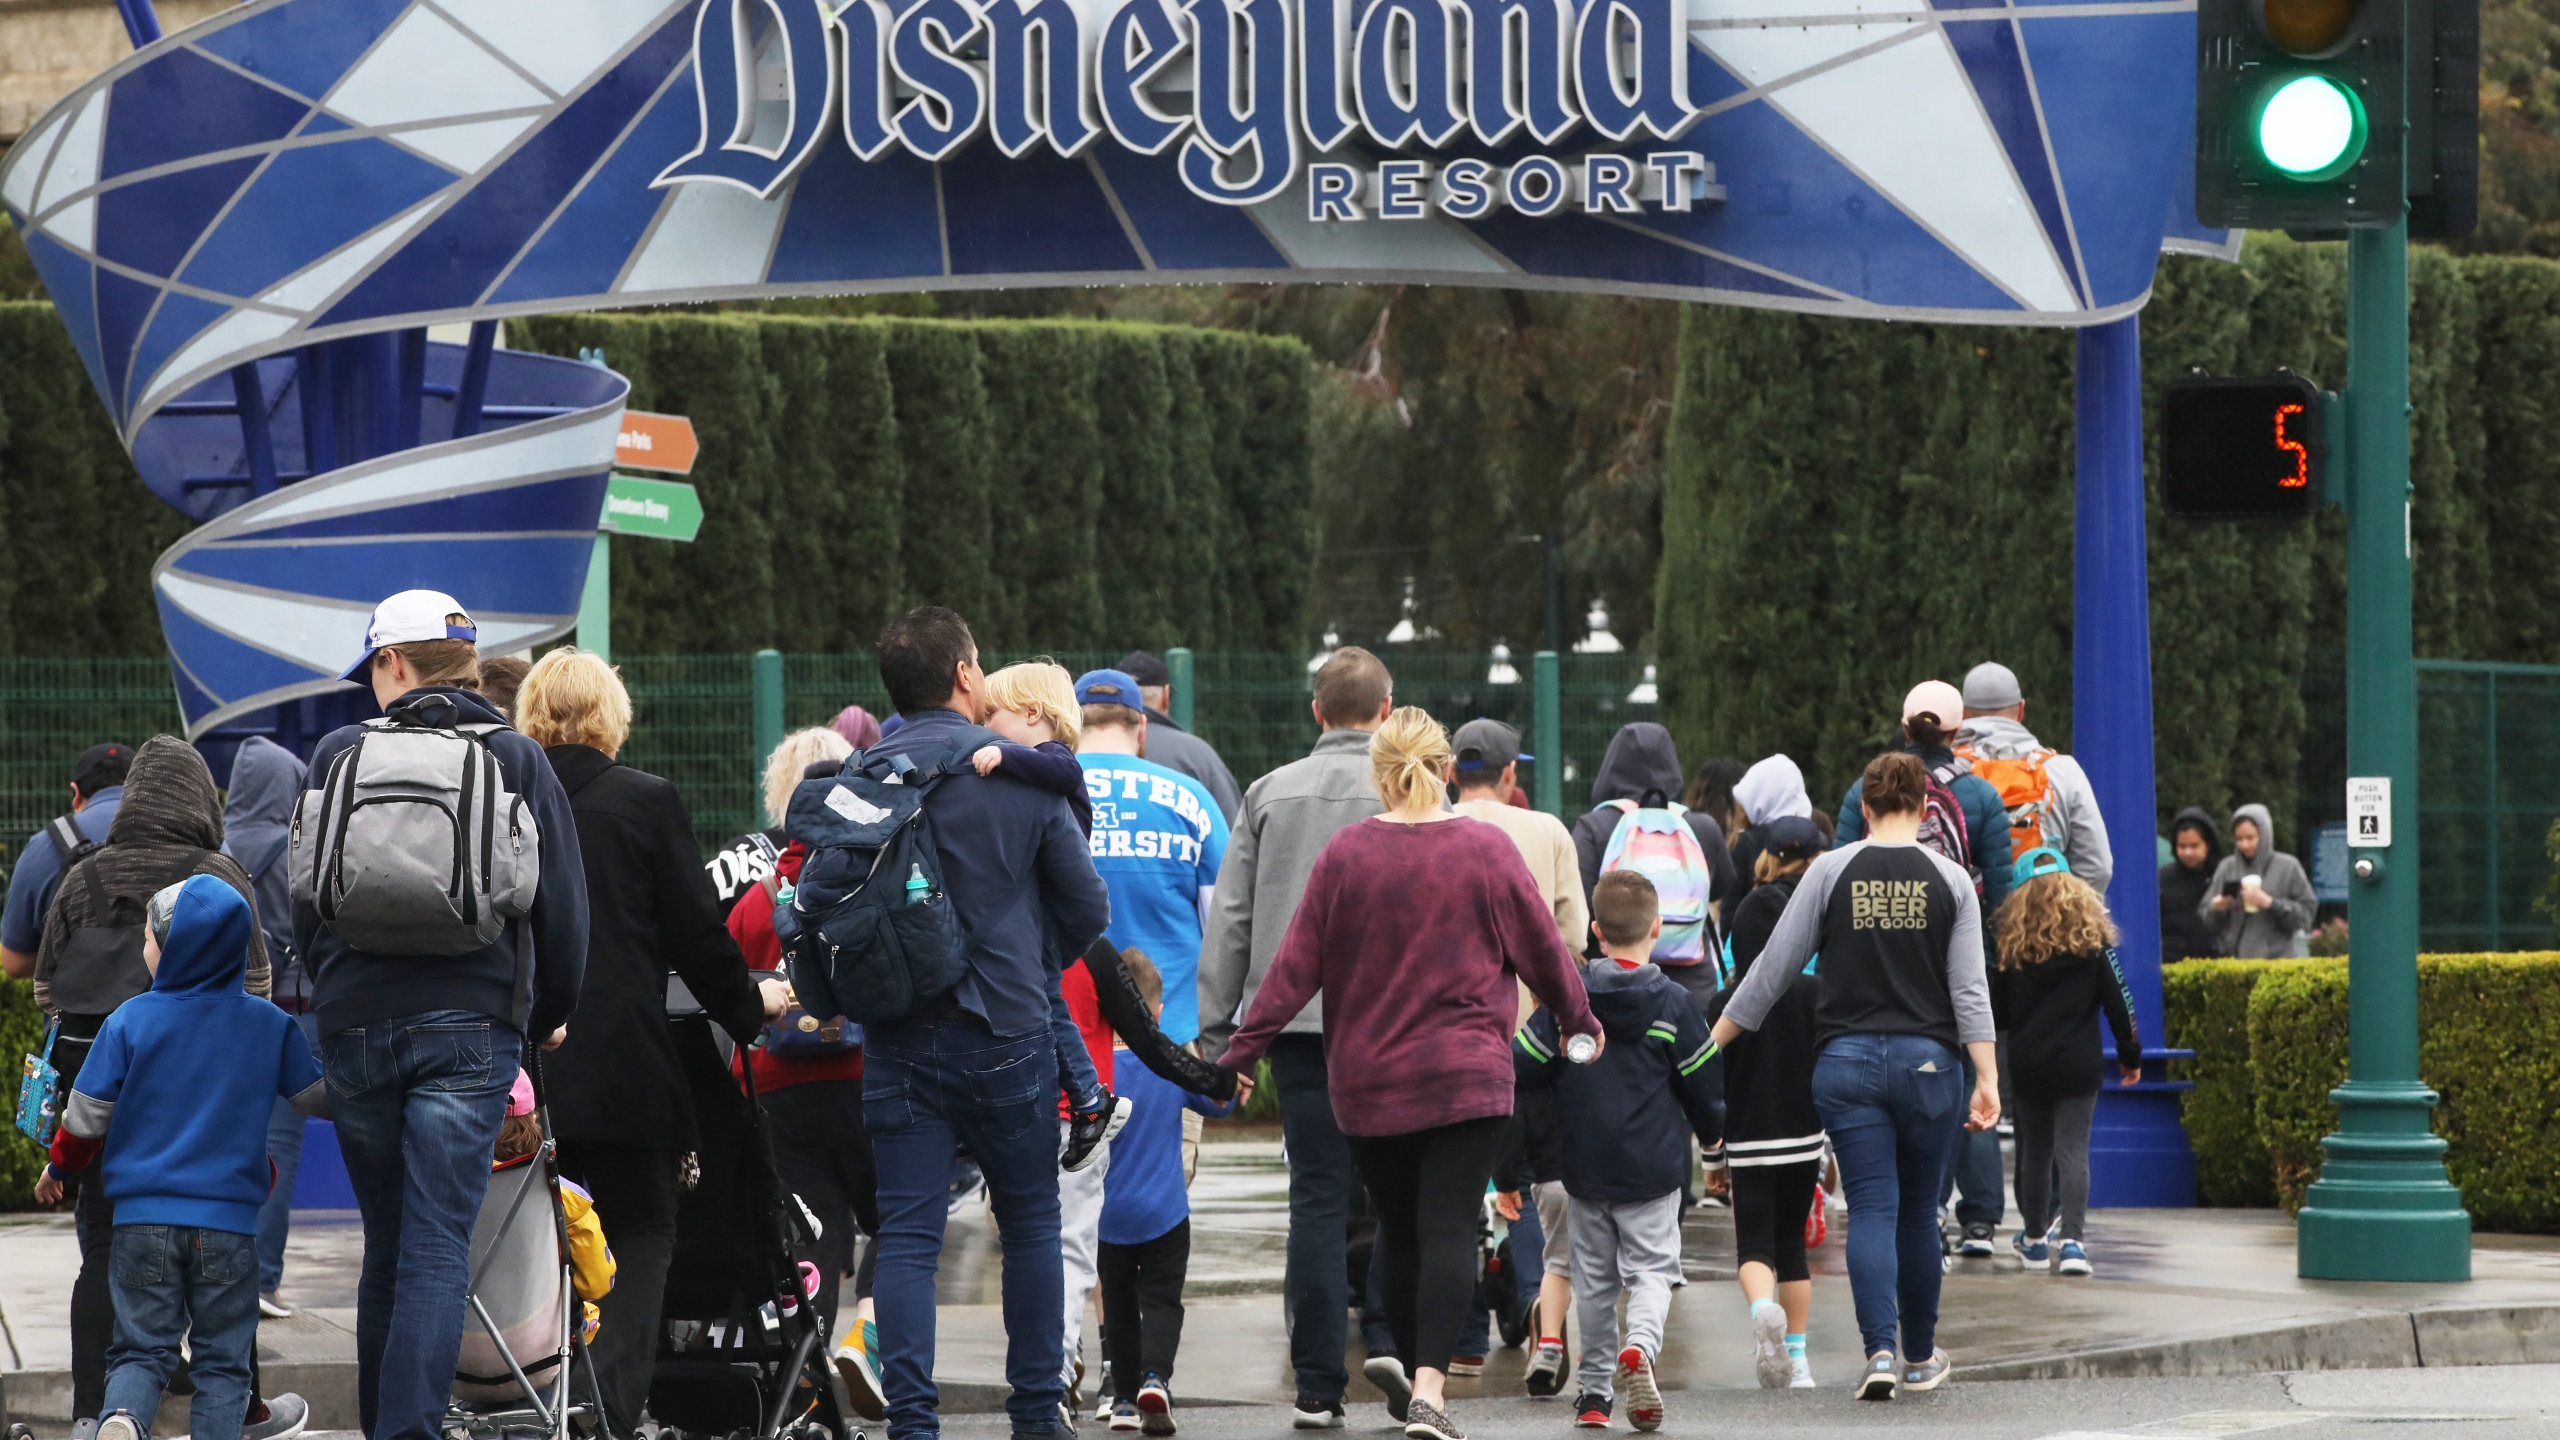 Disneyland visitors enter the famed amusement park in Anaheim on March 13, 2020. (Credit: Mario Tama / Getty Images)